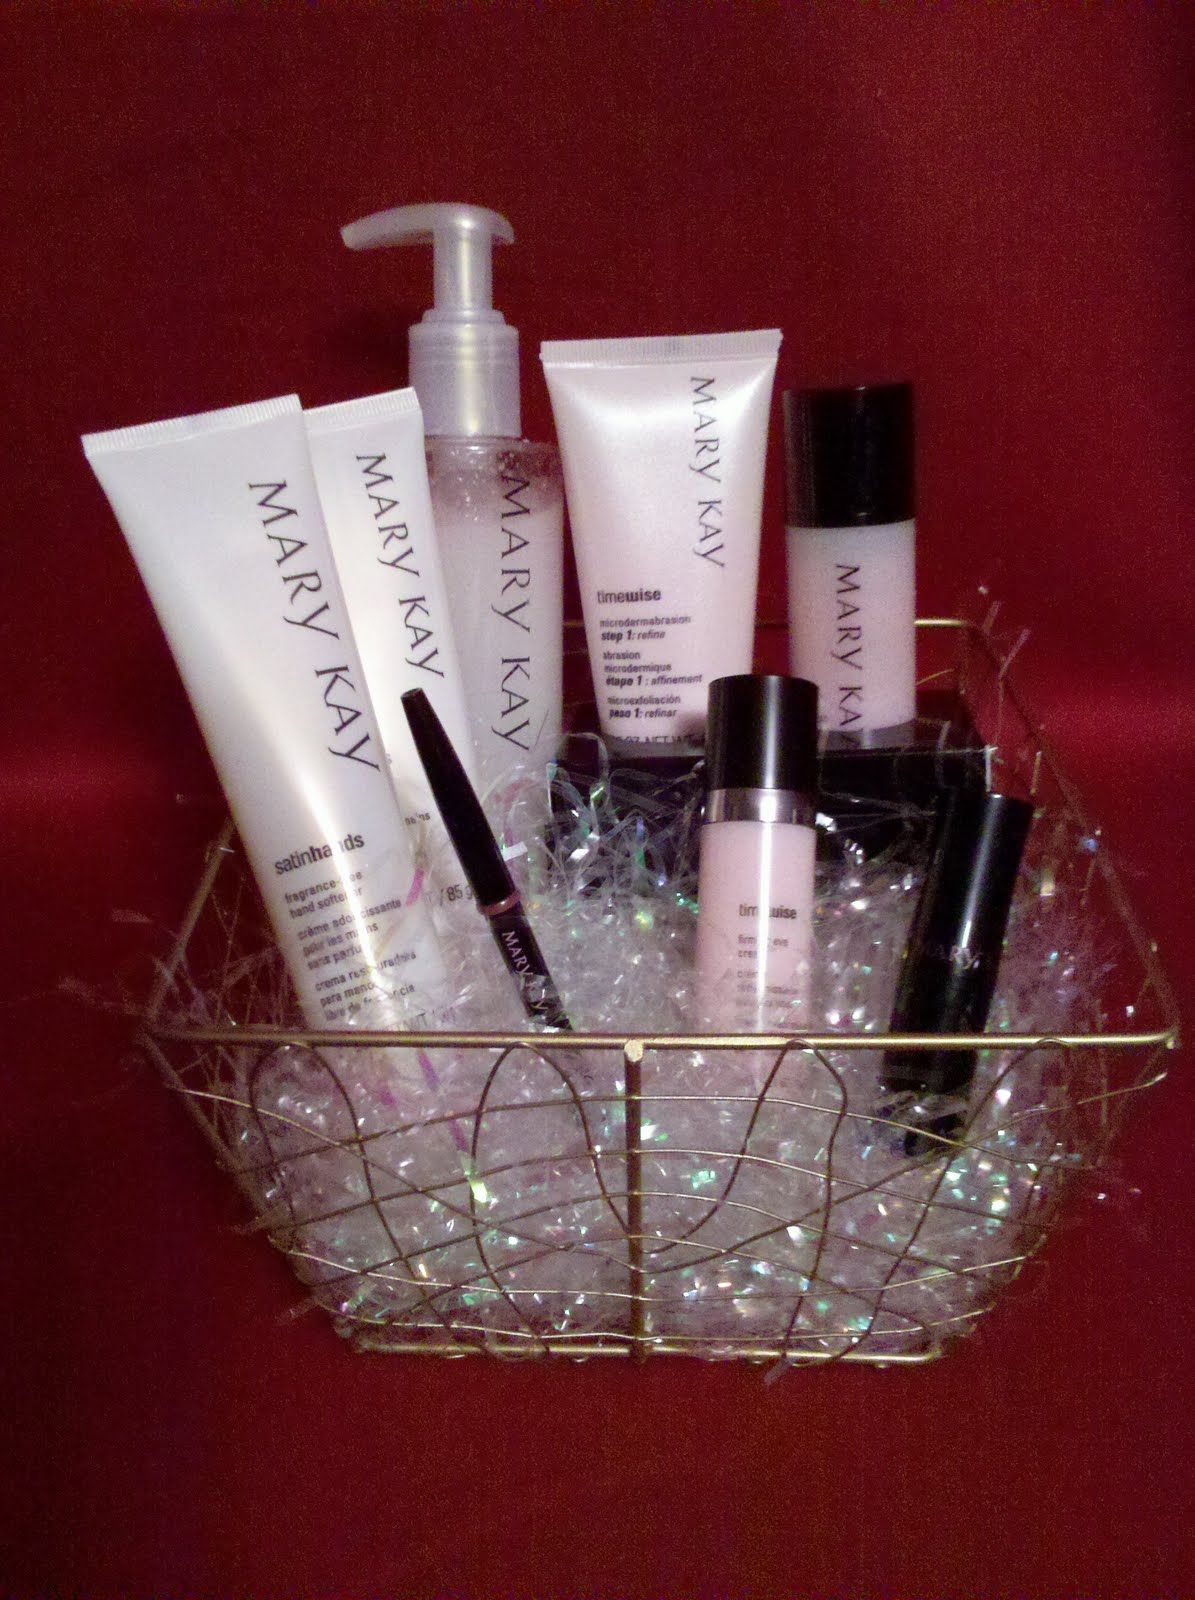 Mary kay gift baskets donated by julie chapman mary kay spoil mum with a mary kay gift basket for mothers day your choice of products arranged in a beautiful basket with lots of extra free goodies negle Gallery